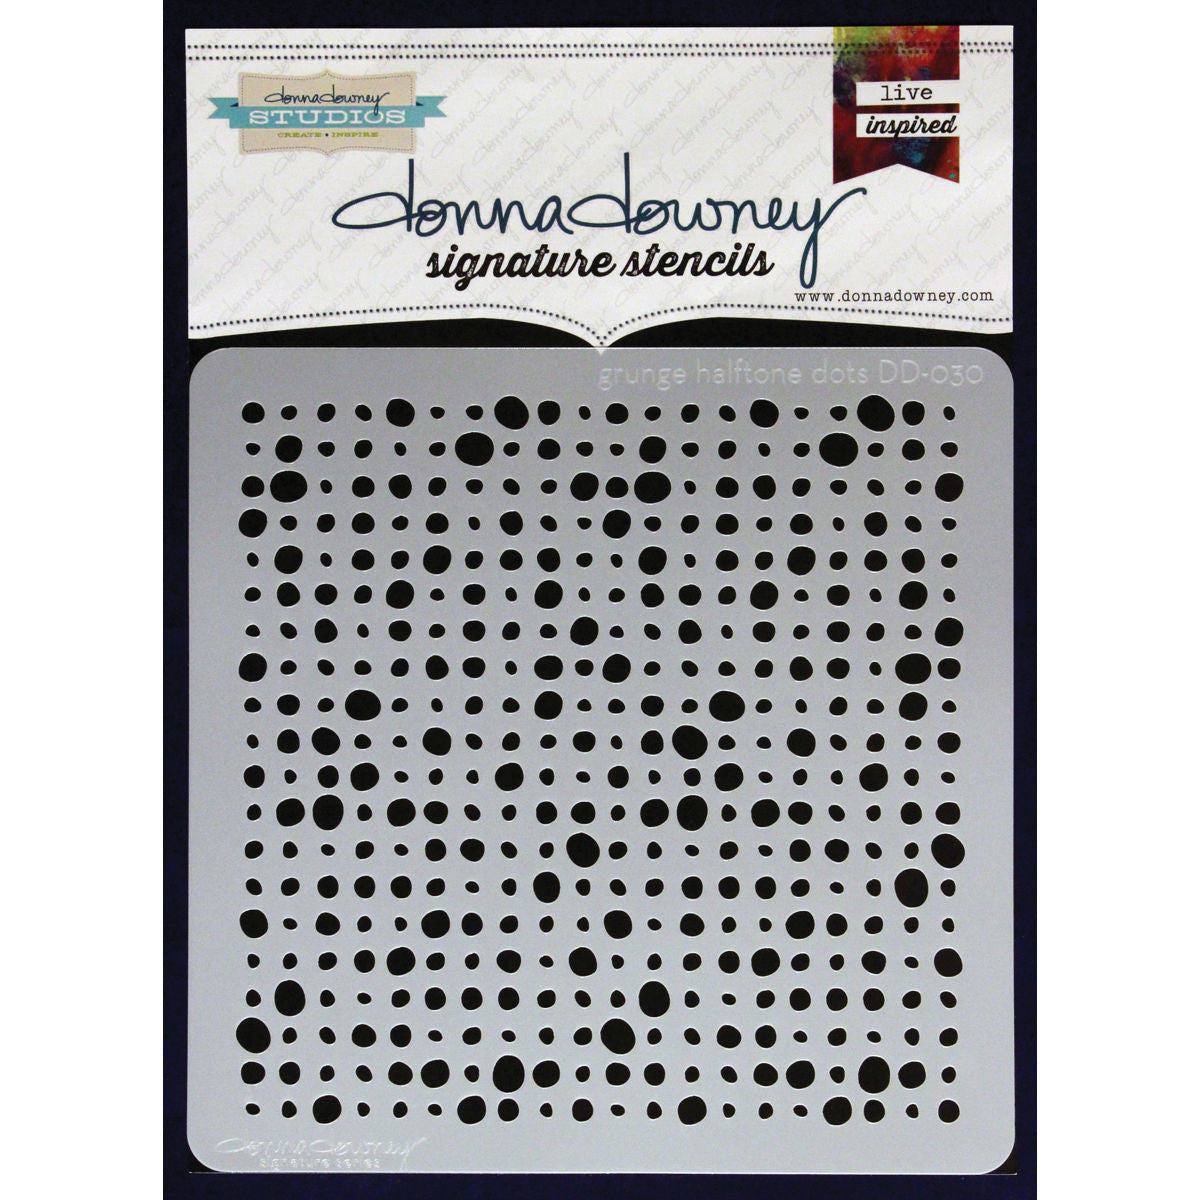 Donna Downey 8x8 Template Grunge Halftone Dots